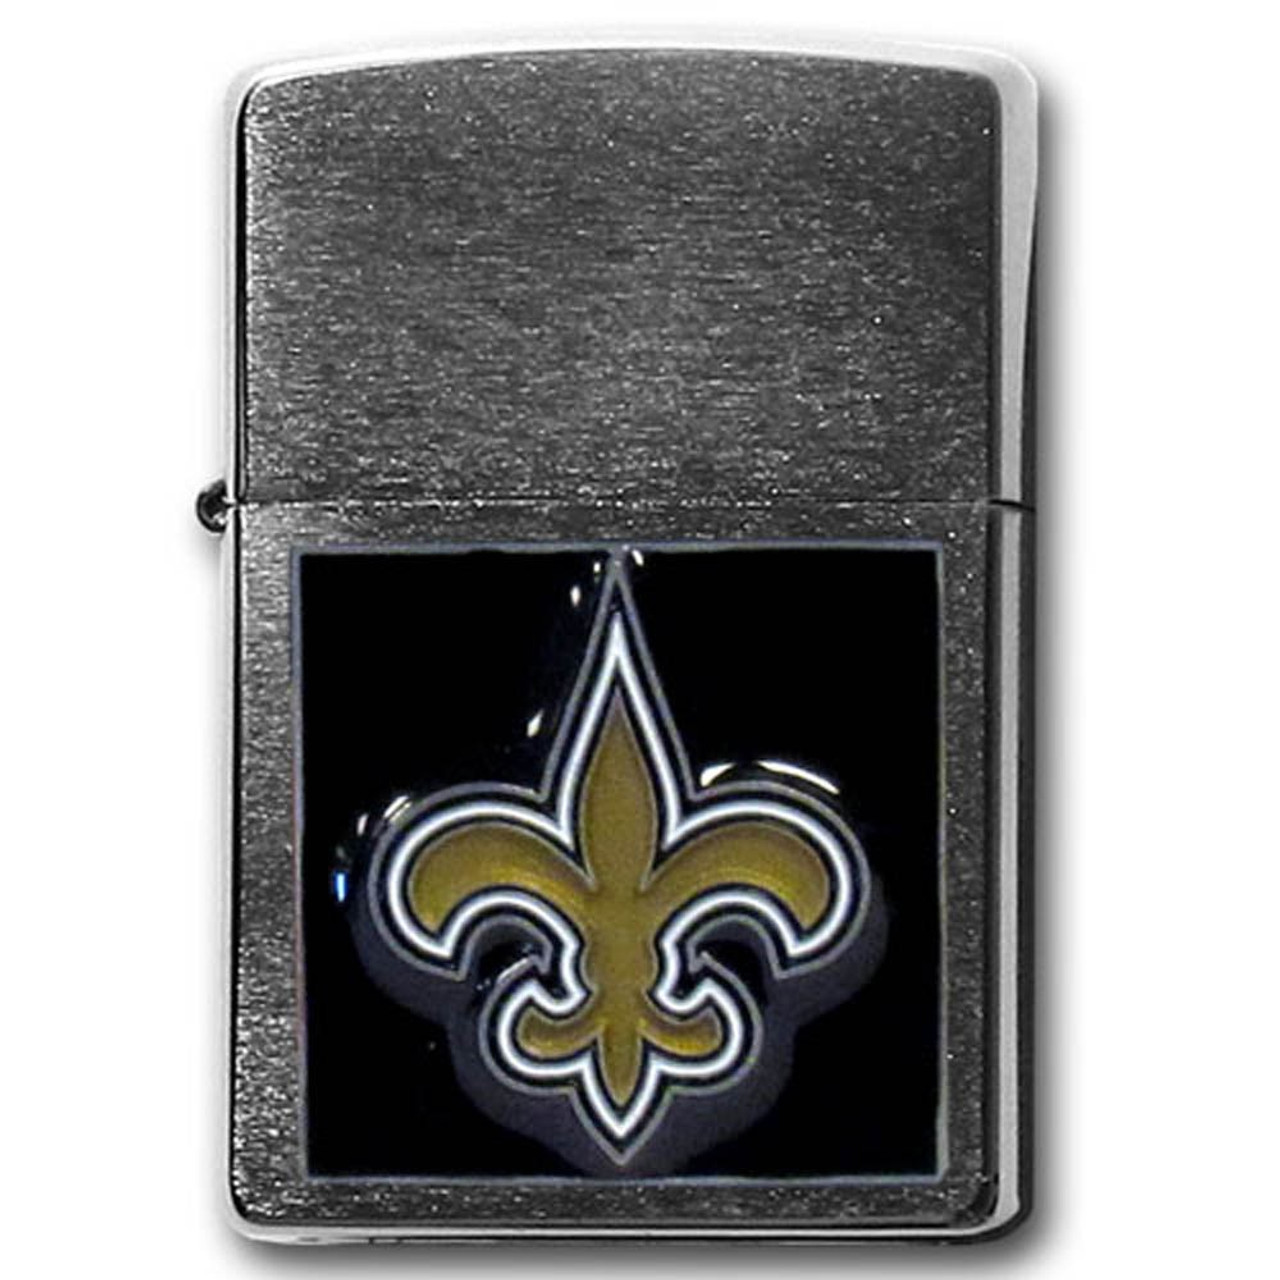 New Orleans Saints Zippo Lighter Fan Foolery